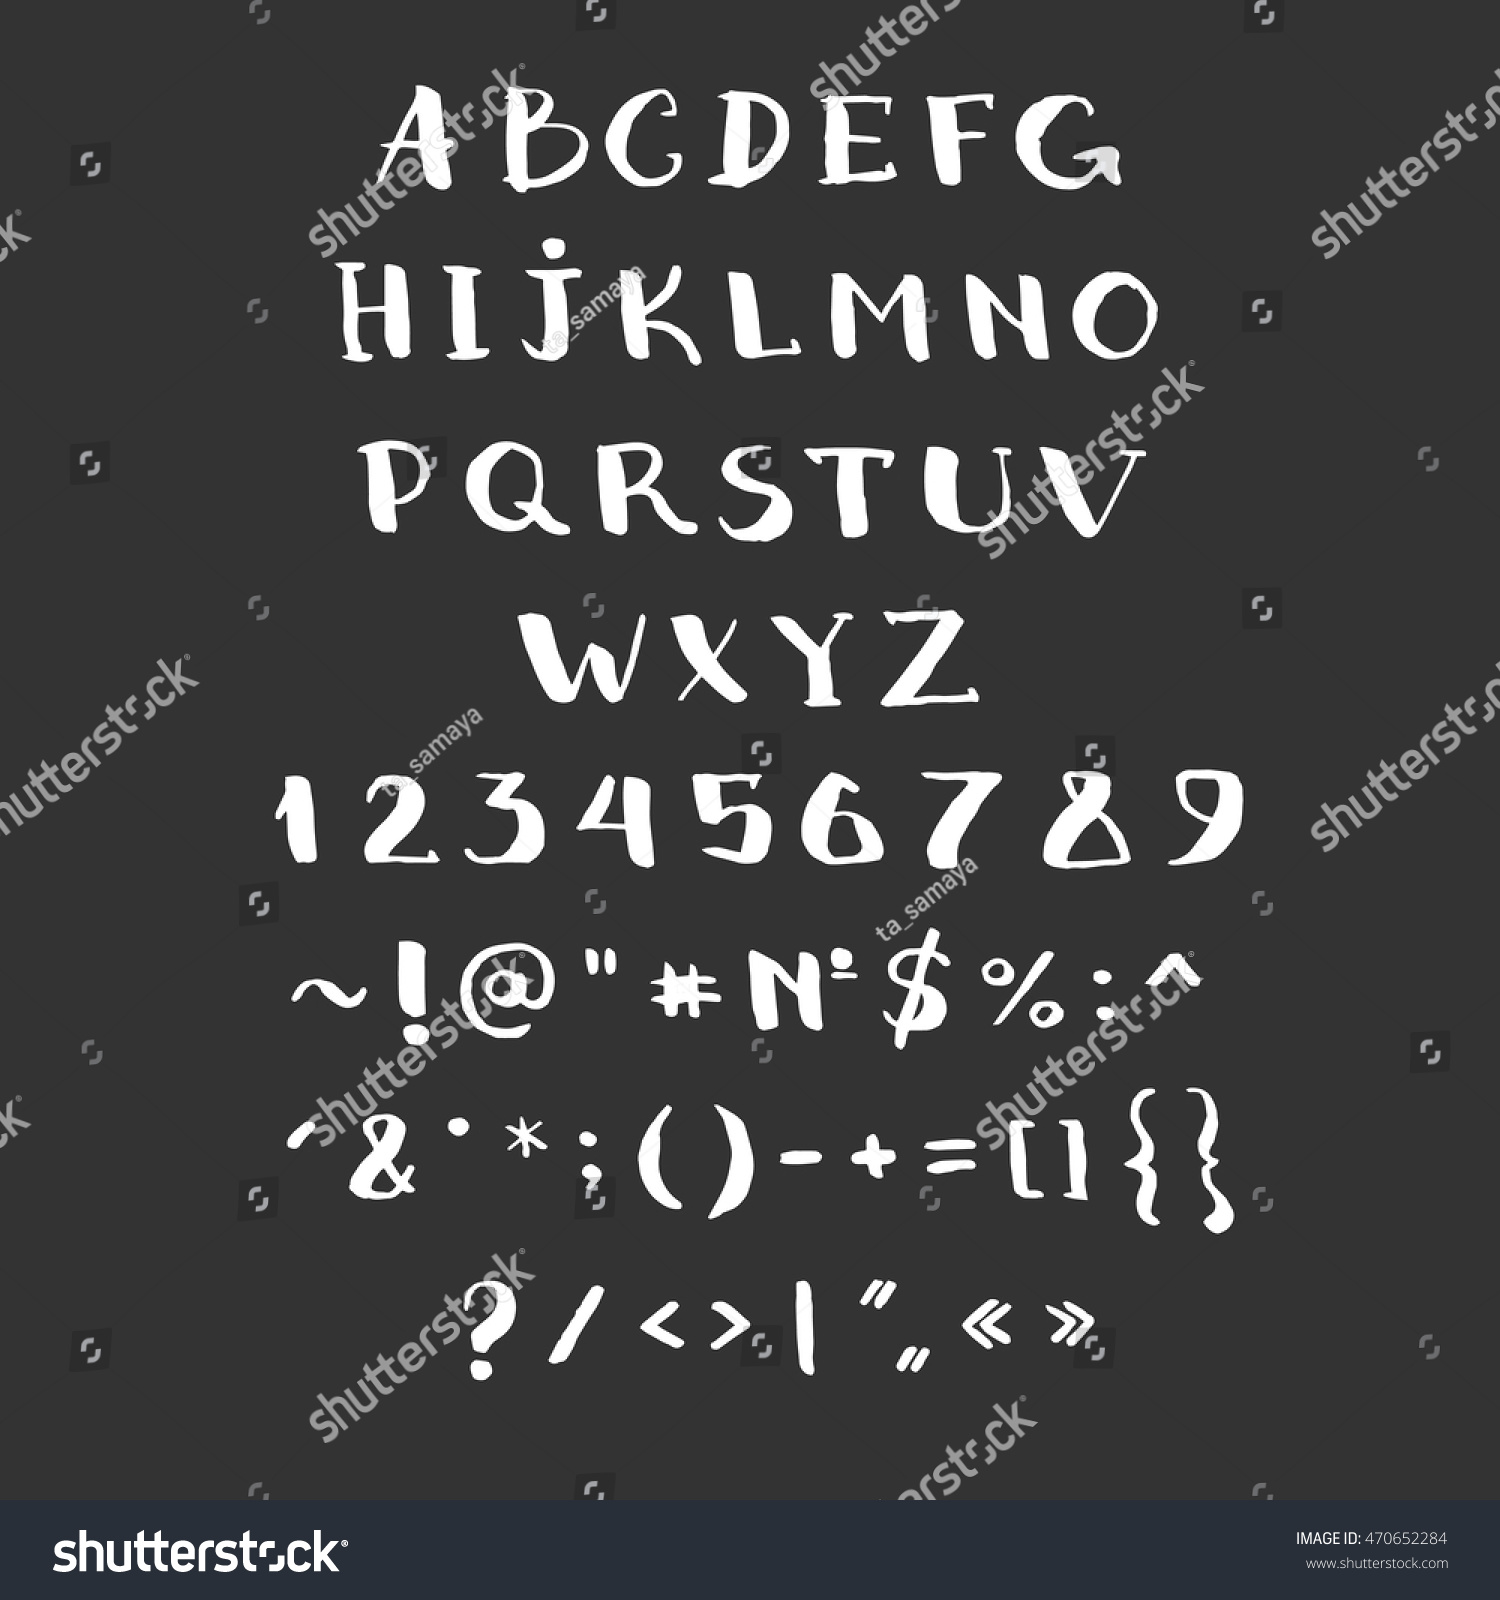 Alphabet Vector Hand Drawn With Symbols Abc Brush Painted Letters